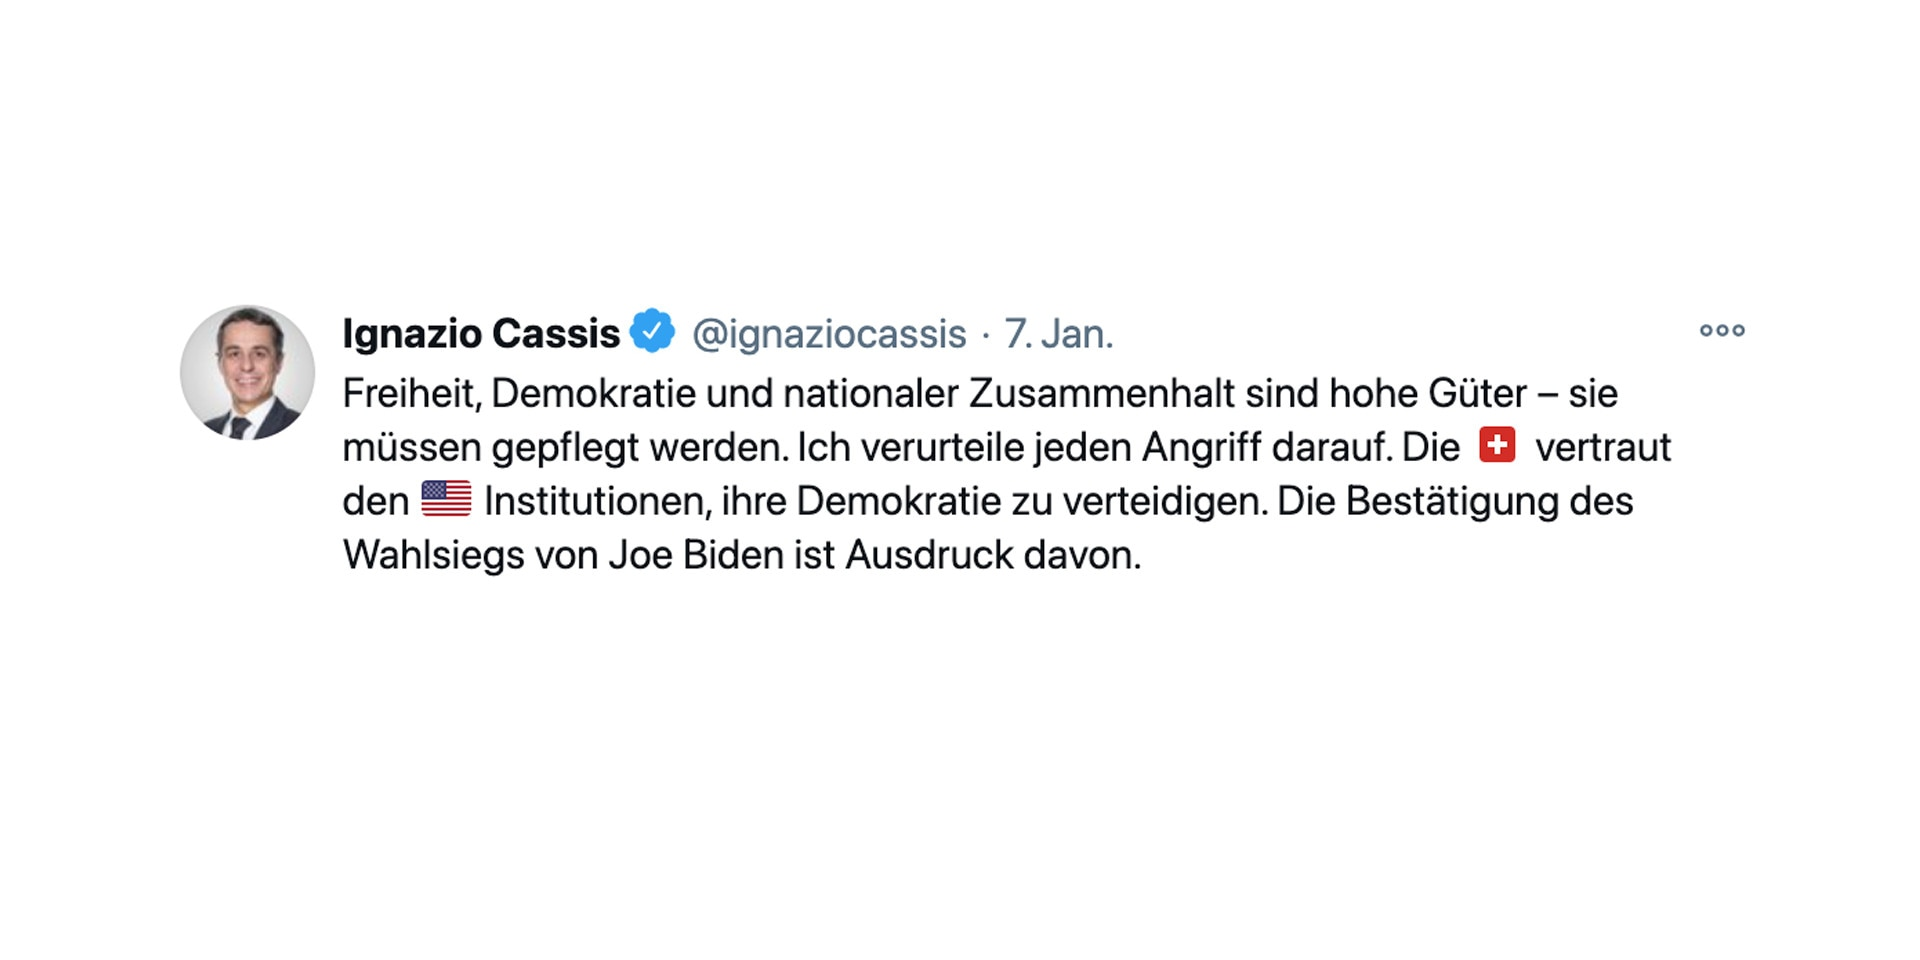 Image of the tweet published by Federal Councillor Ignazio Cassis after the events in Washington.